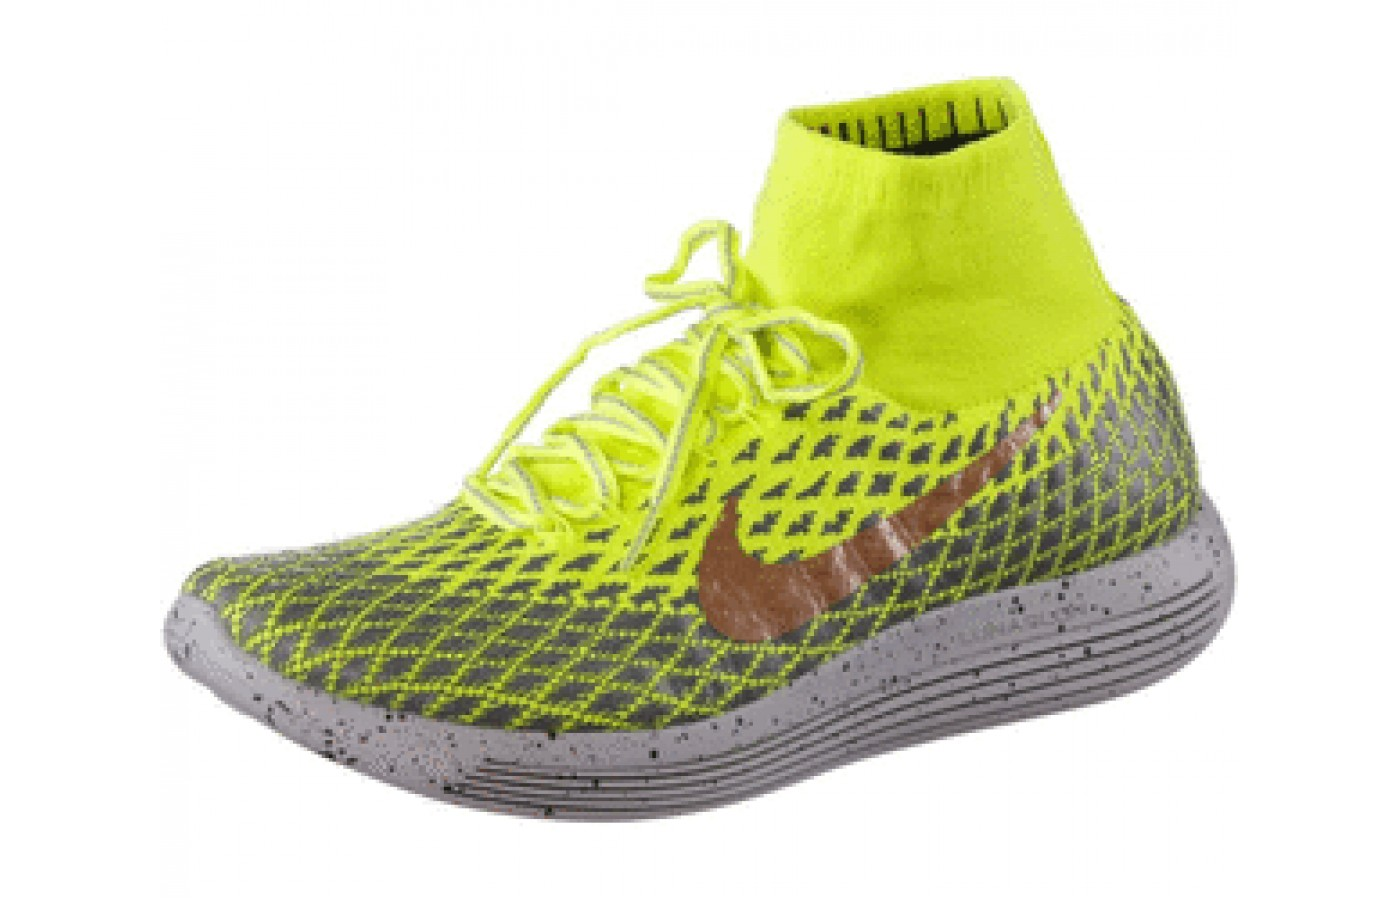 Side Angled view of the Nike LunarEpic FlyKnit Shield